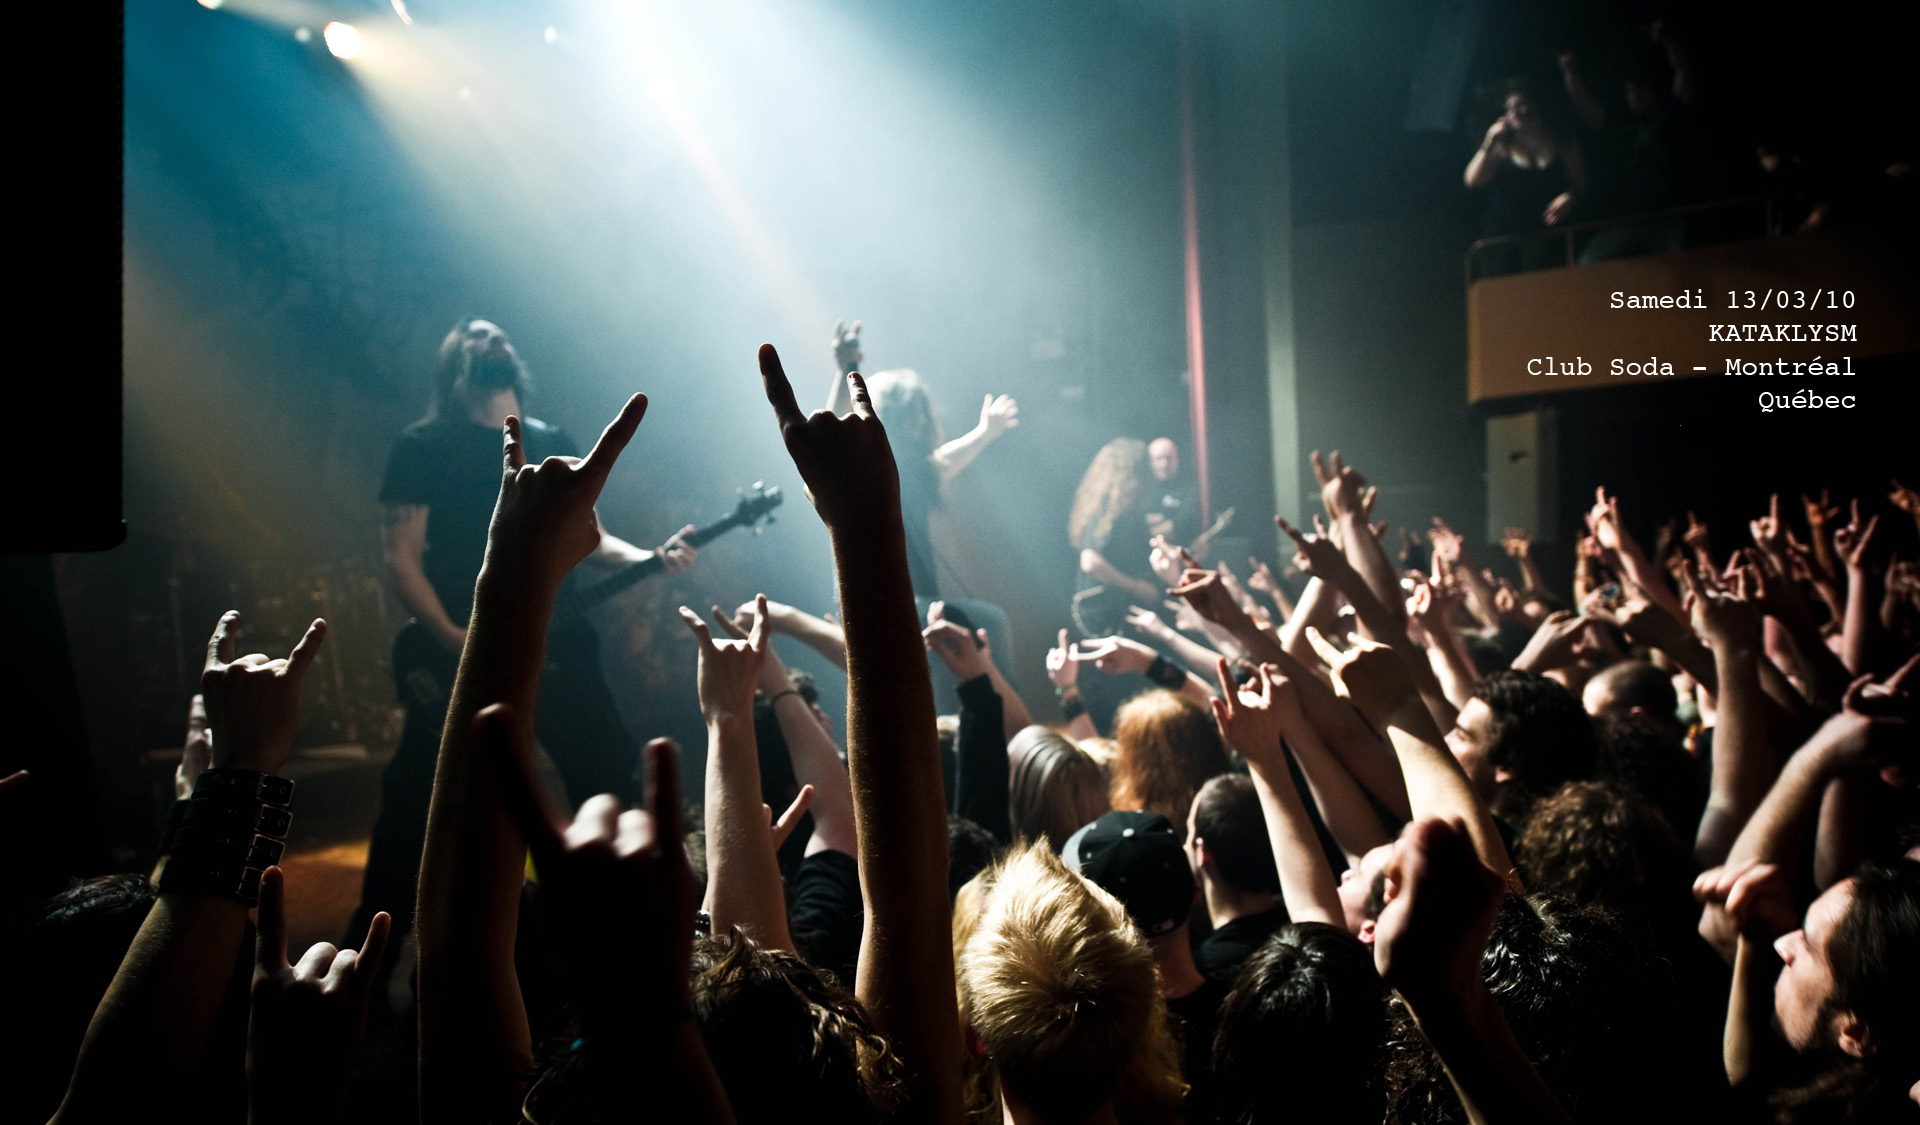 kataklysm death metal heavy hard rock concert concerts crowd wallpaper 1920x1125